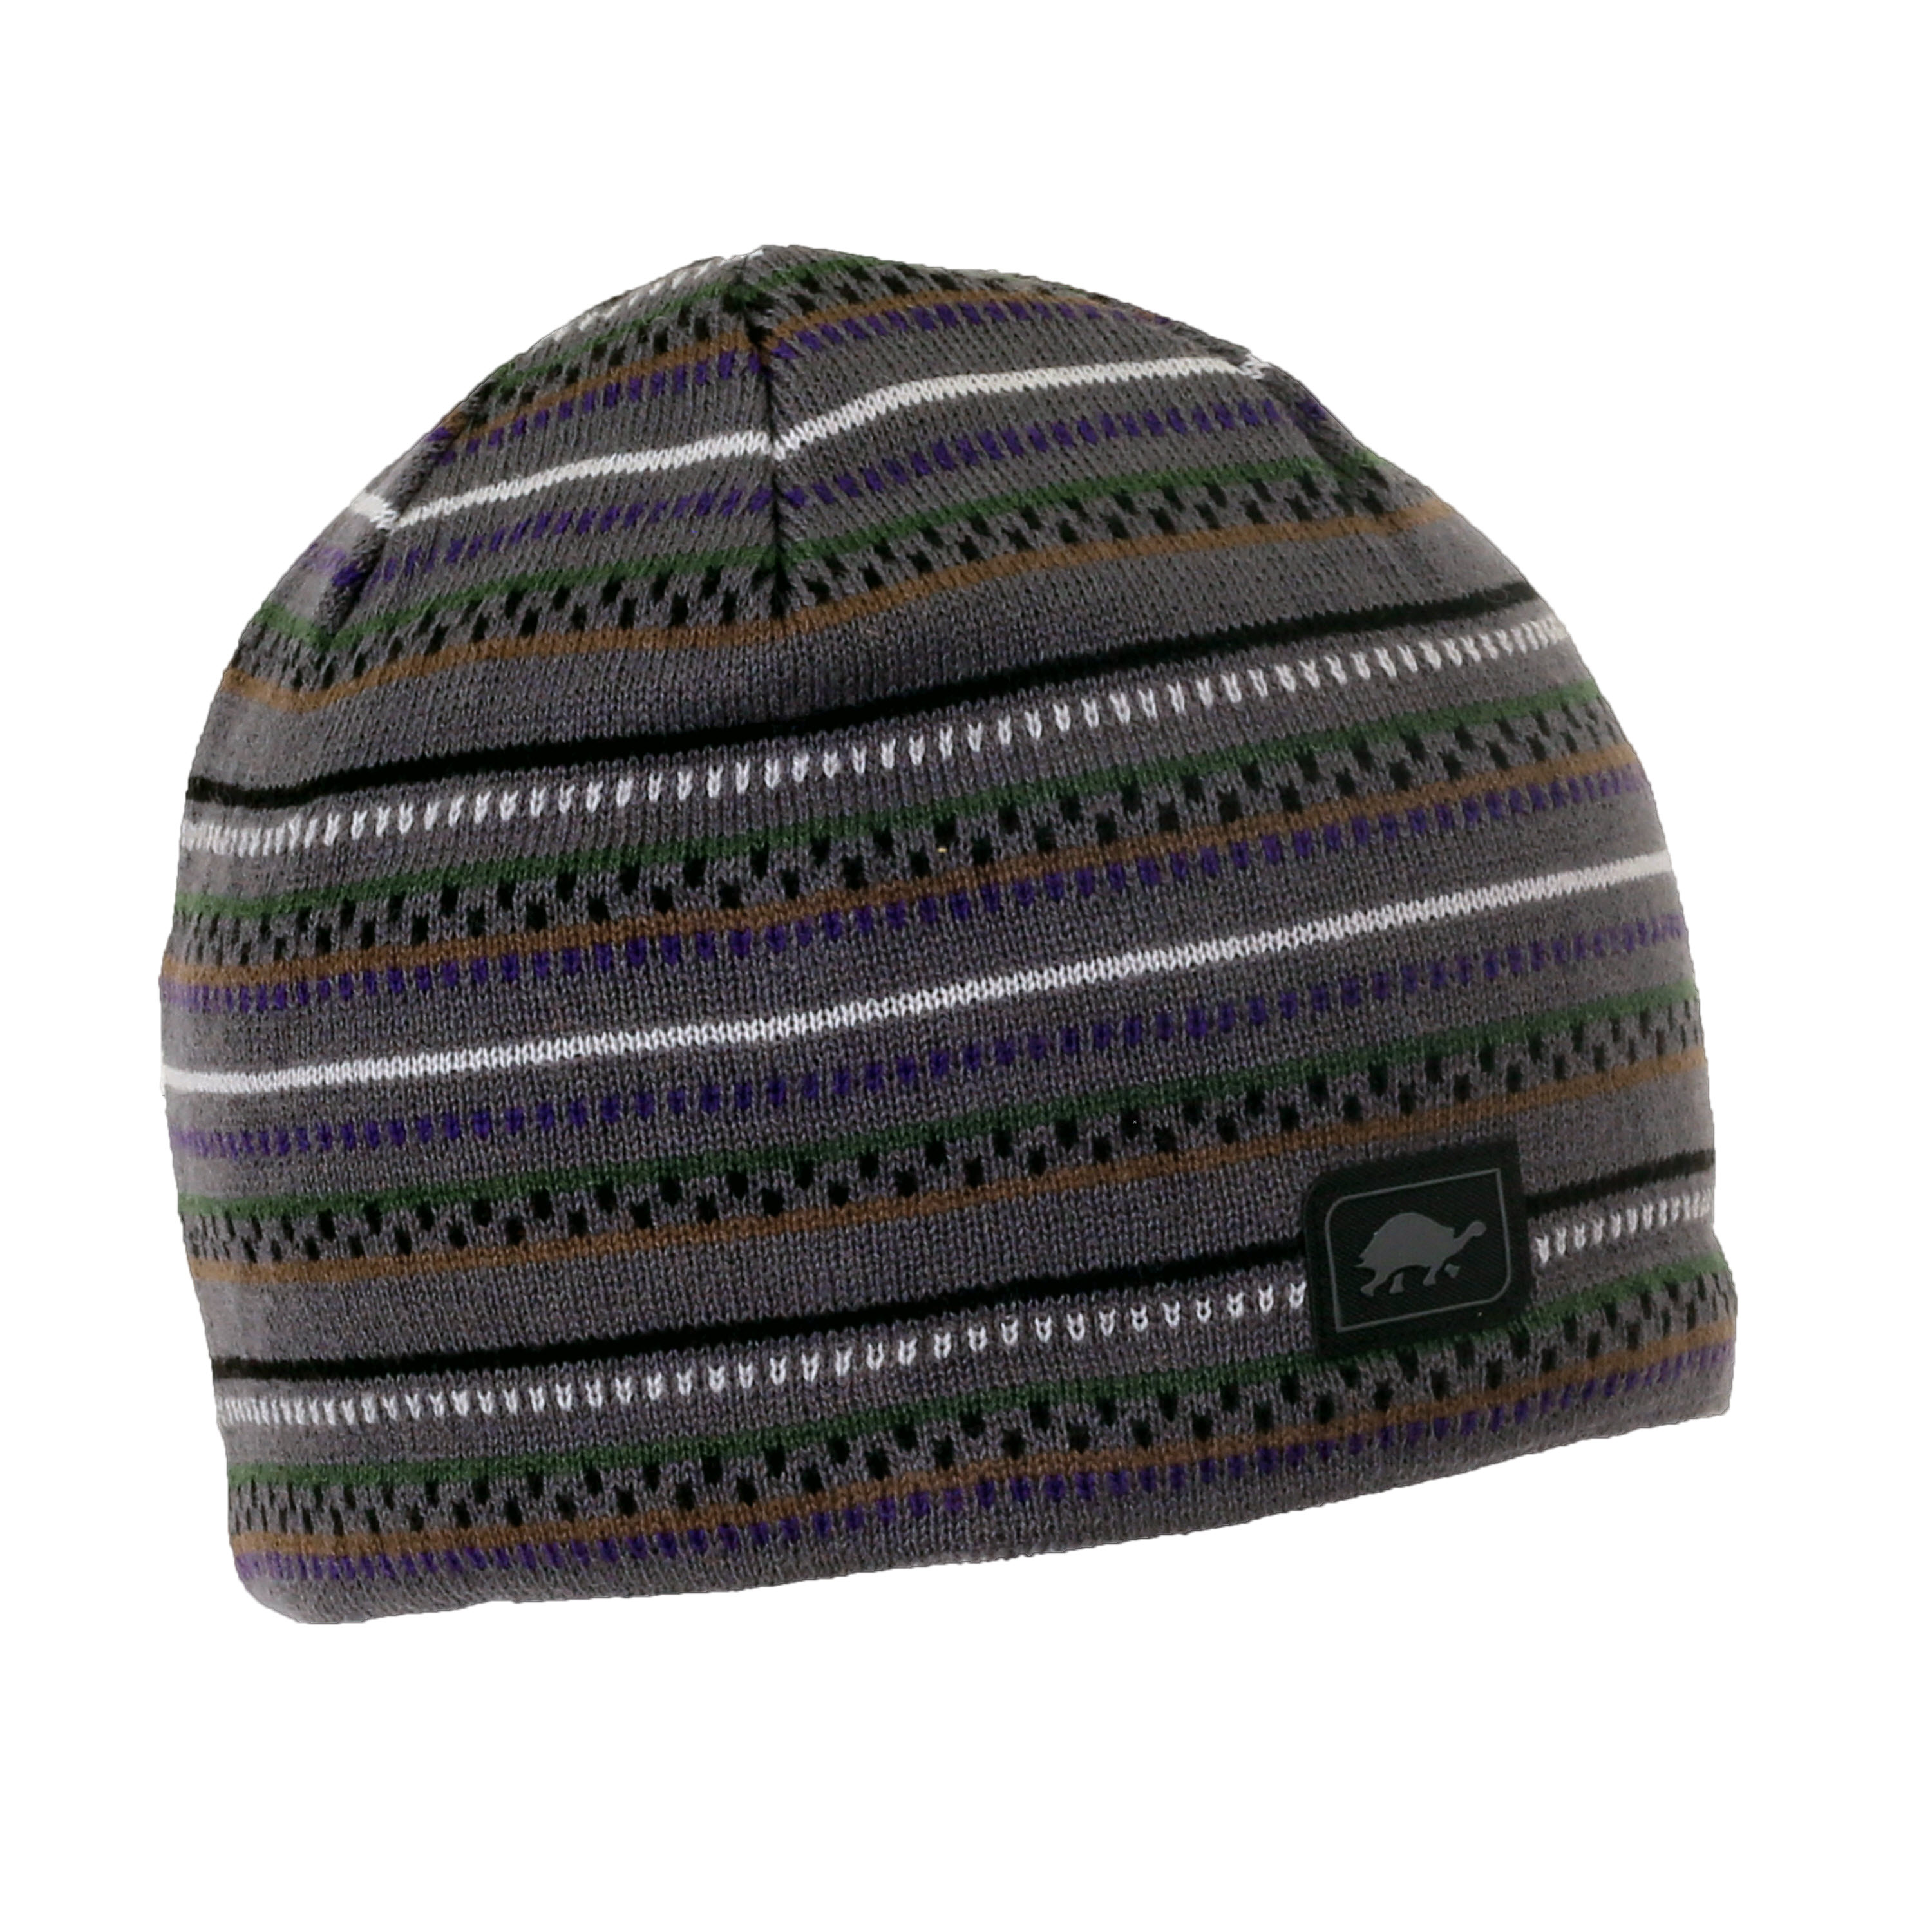 Turtle Fur Niall Men s Merino Wool Striped Knit Beanie  38147735322